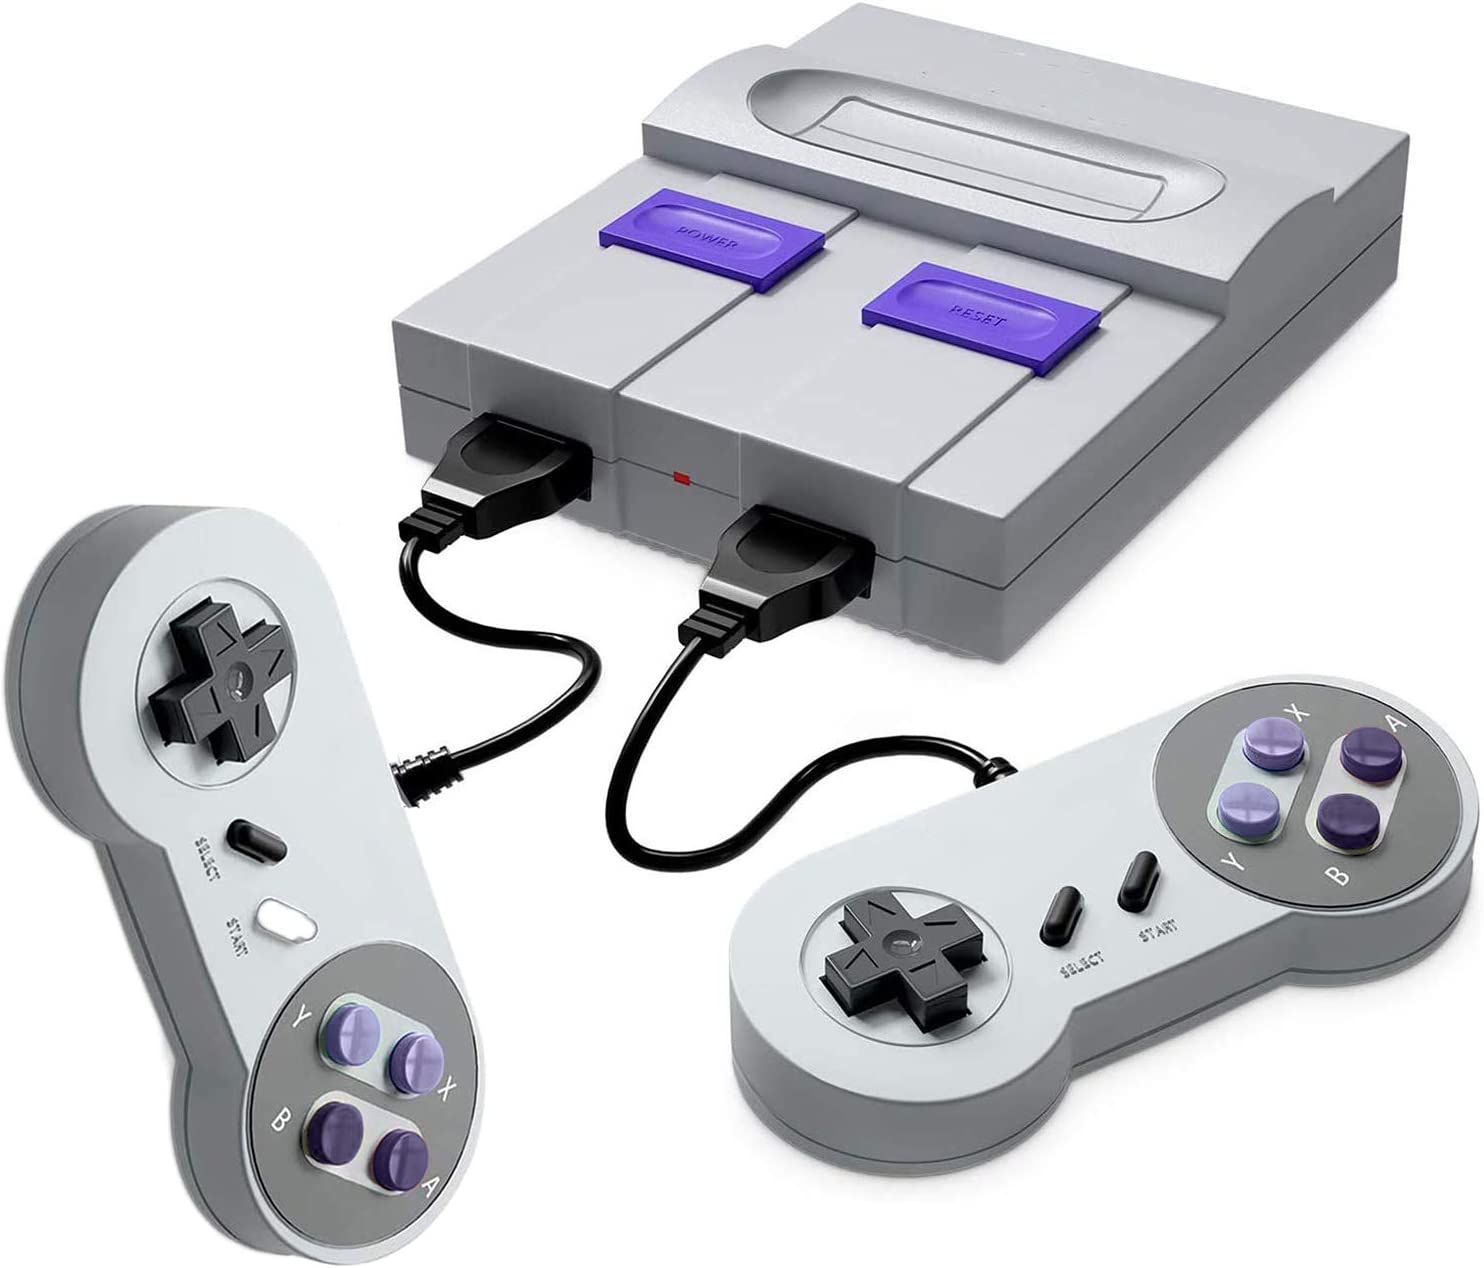 Retro Game Console- Handheld Video Game Console Classic Built-in 821 Games(Original SNES Style)with Controllers, Super Mini TV Classic Video Gaming Console Plug&Play HDMI HD Player for Kid, Adult Gift